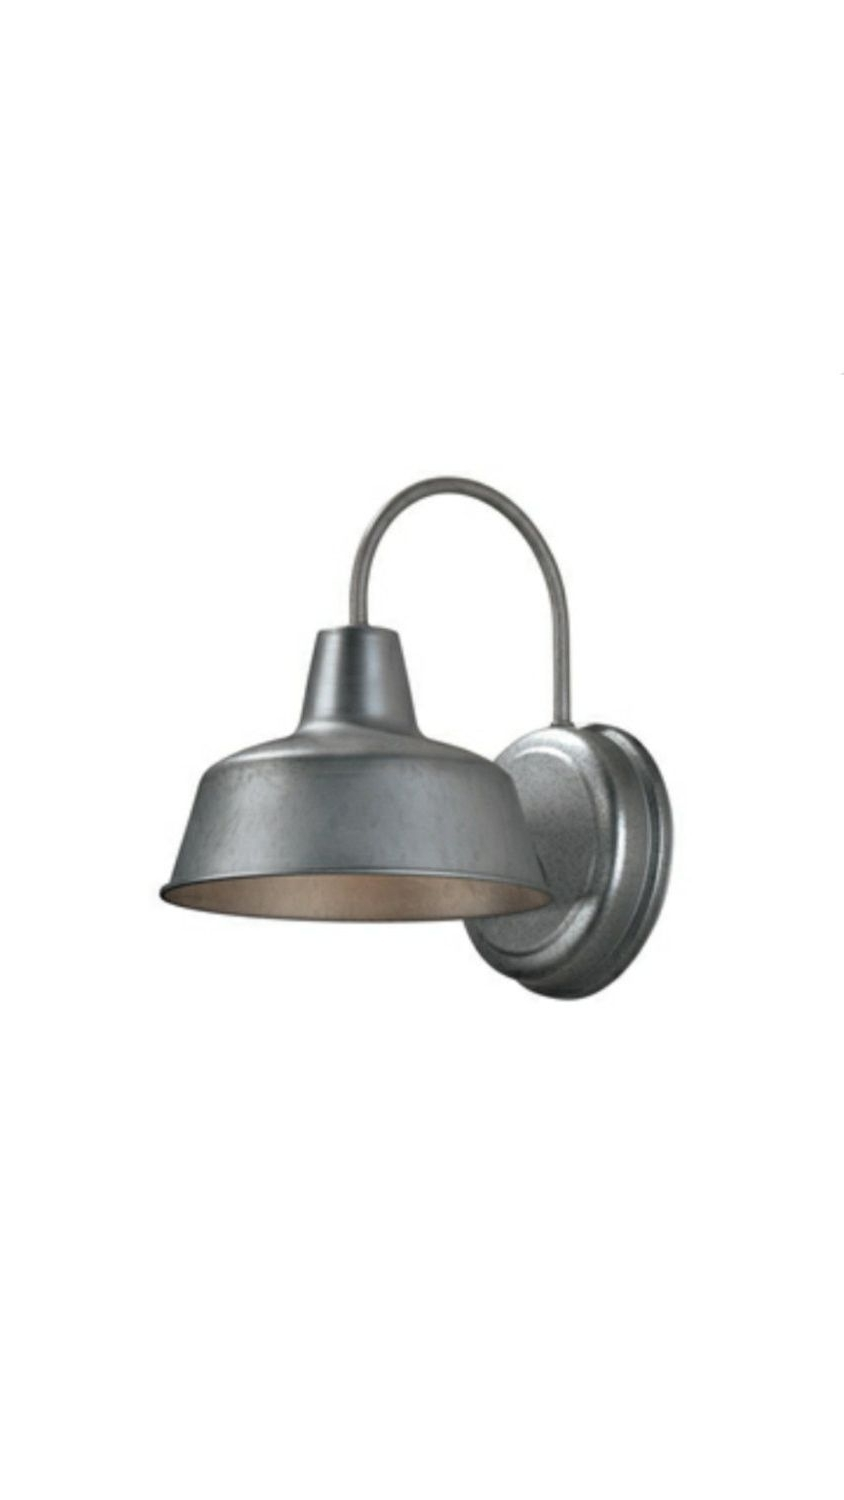 Galvanized Outdoor Ceiling Lights Within Popular Farmhouse Sconce Light (View 20 of 20)